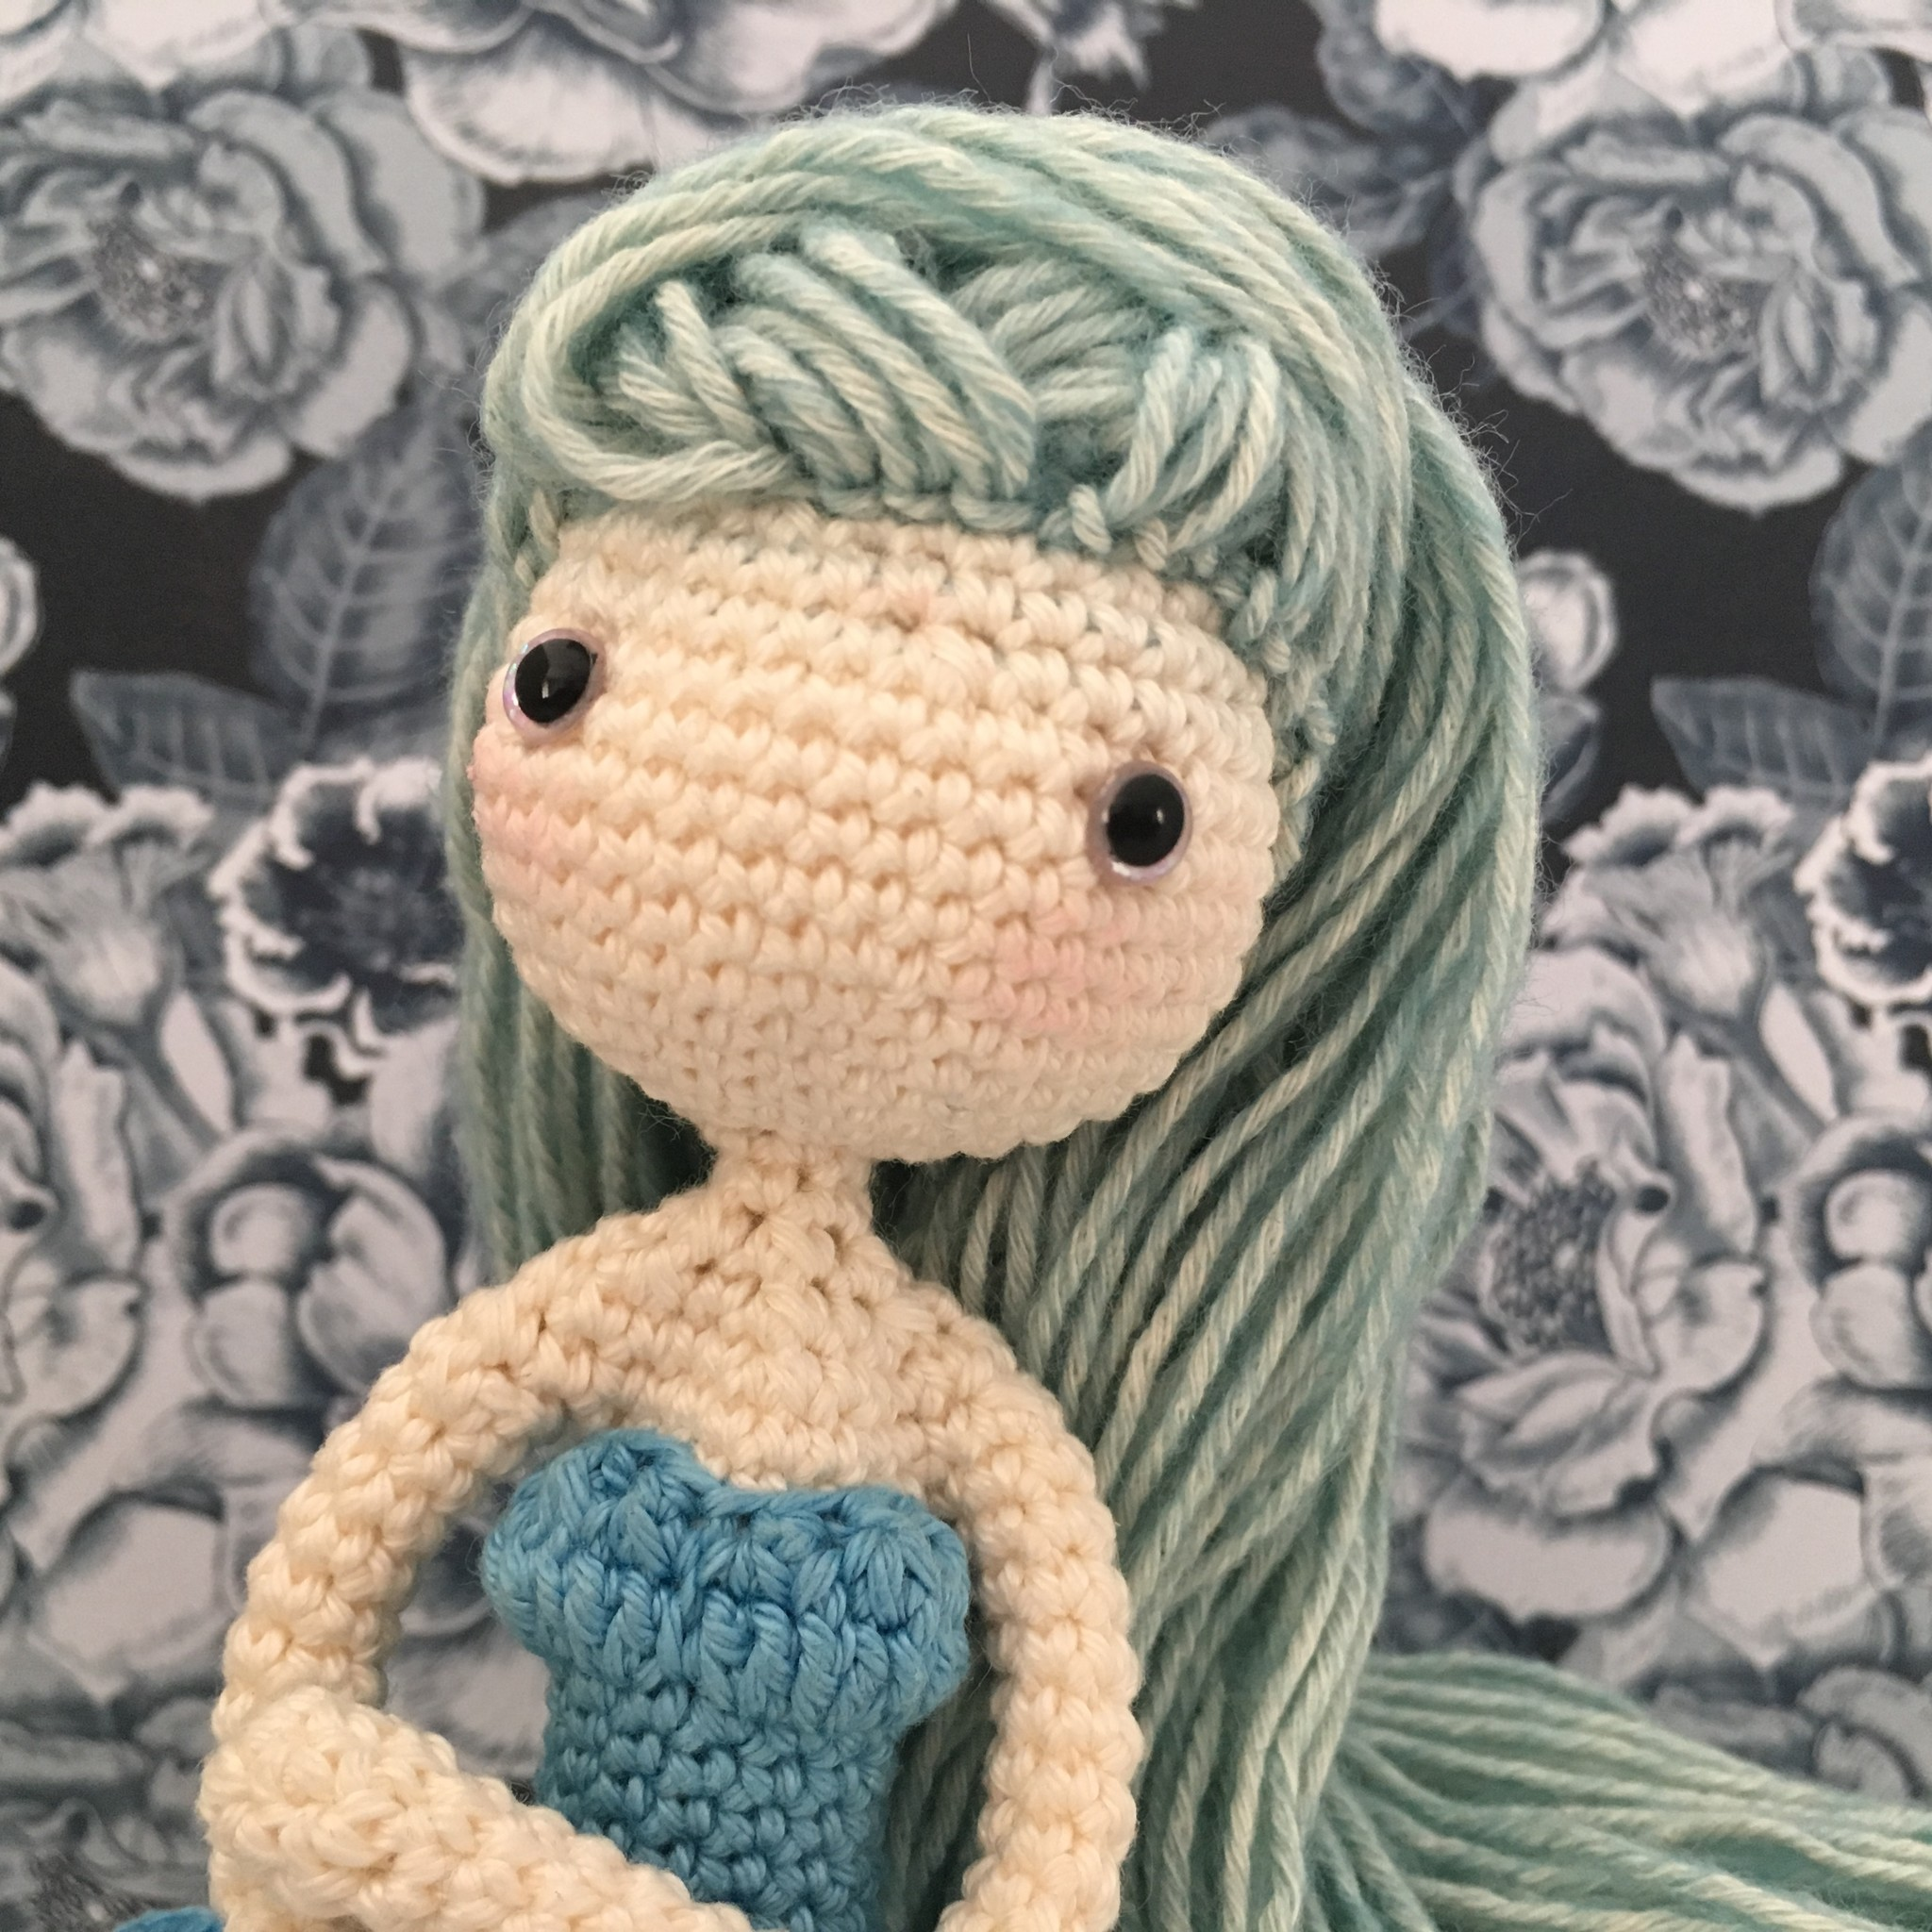 Amilishly Designs Haakpatroon AMILISHLY Amigurumi - IJsprinses Ysolde